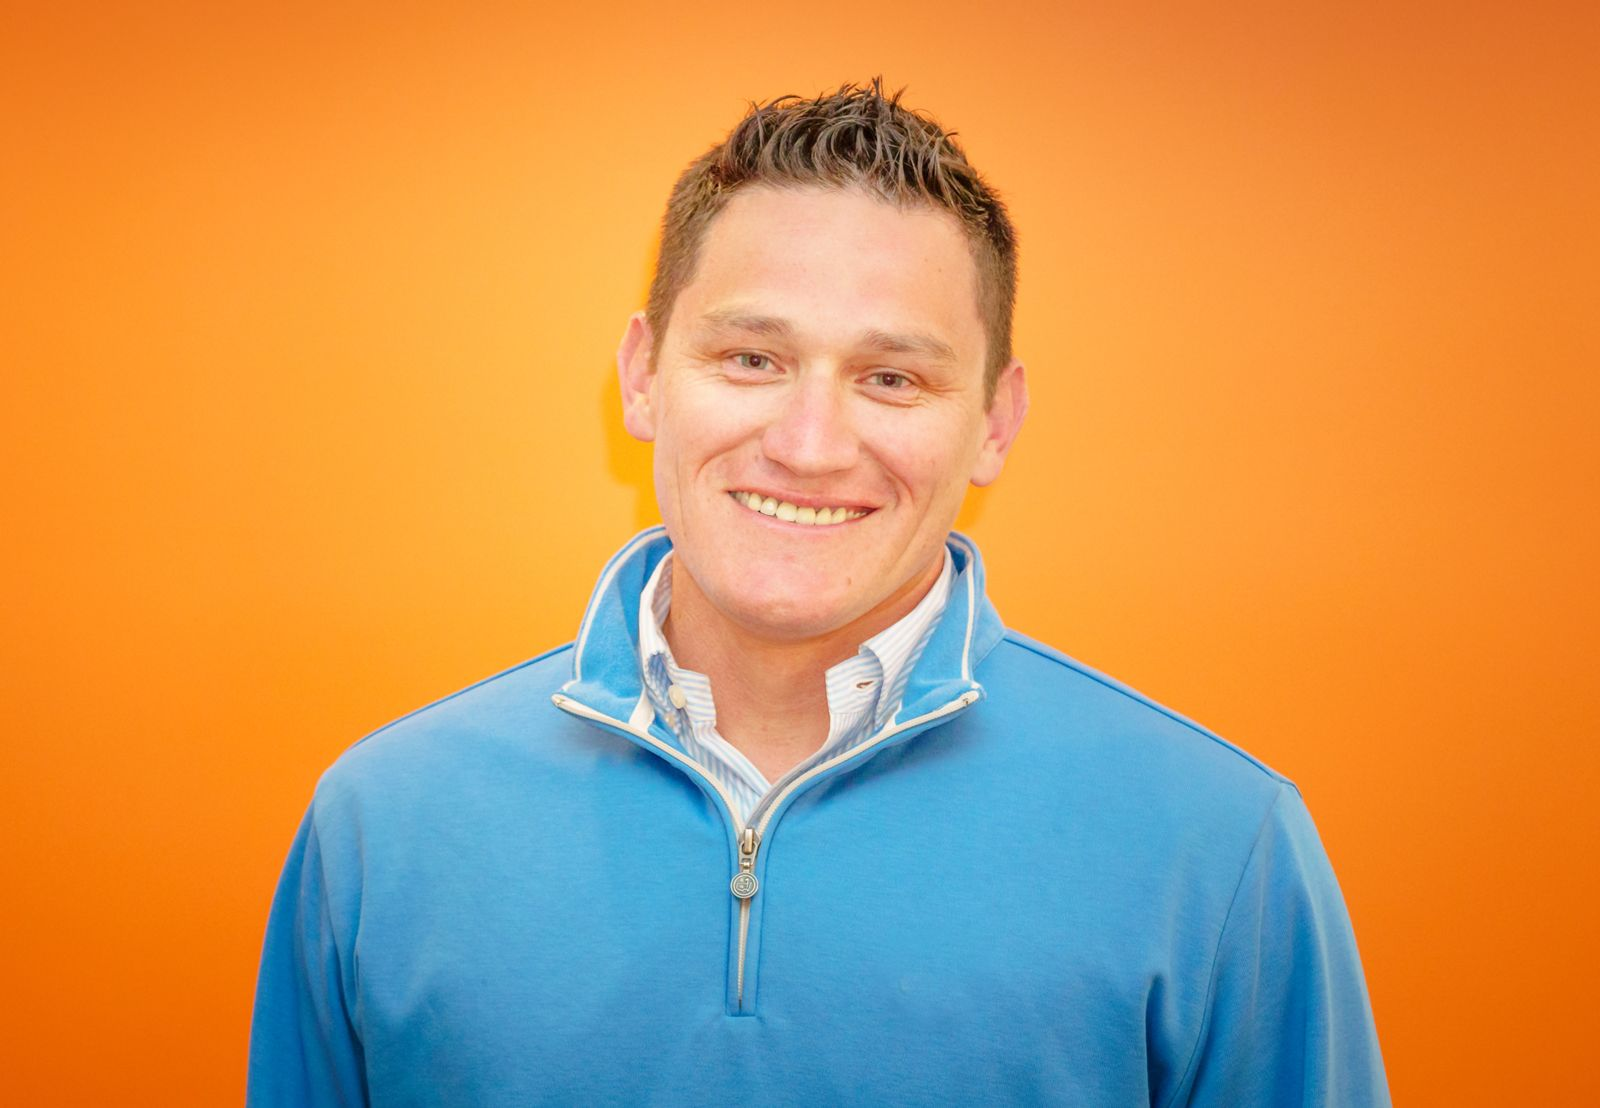 SignUpGenius expands executive team with addition of Chris Lucas as Chief Business Development Officer